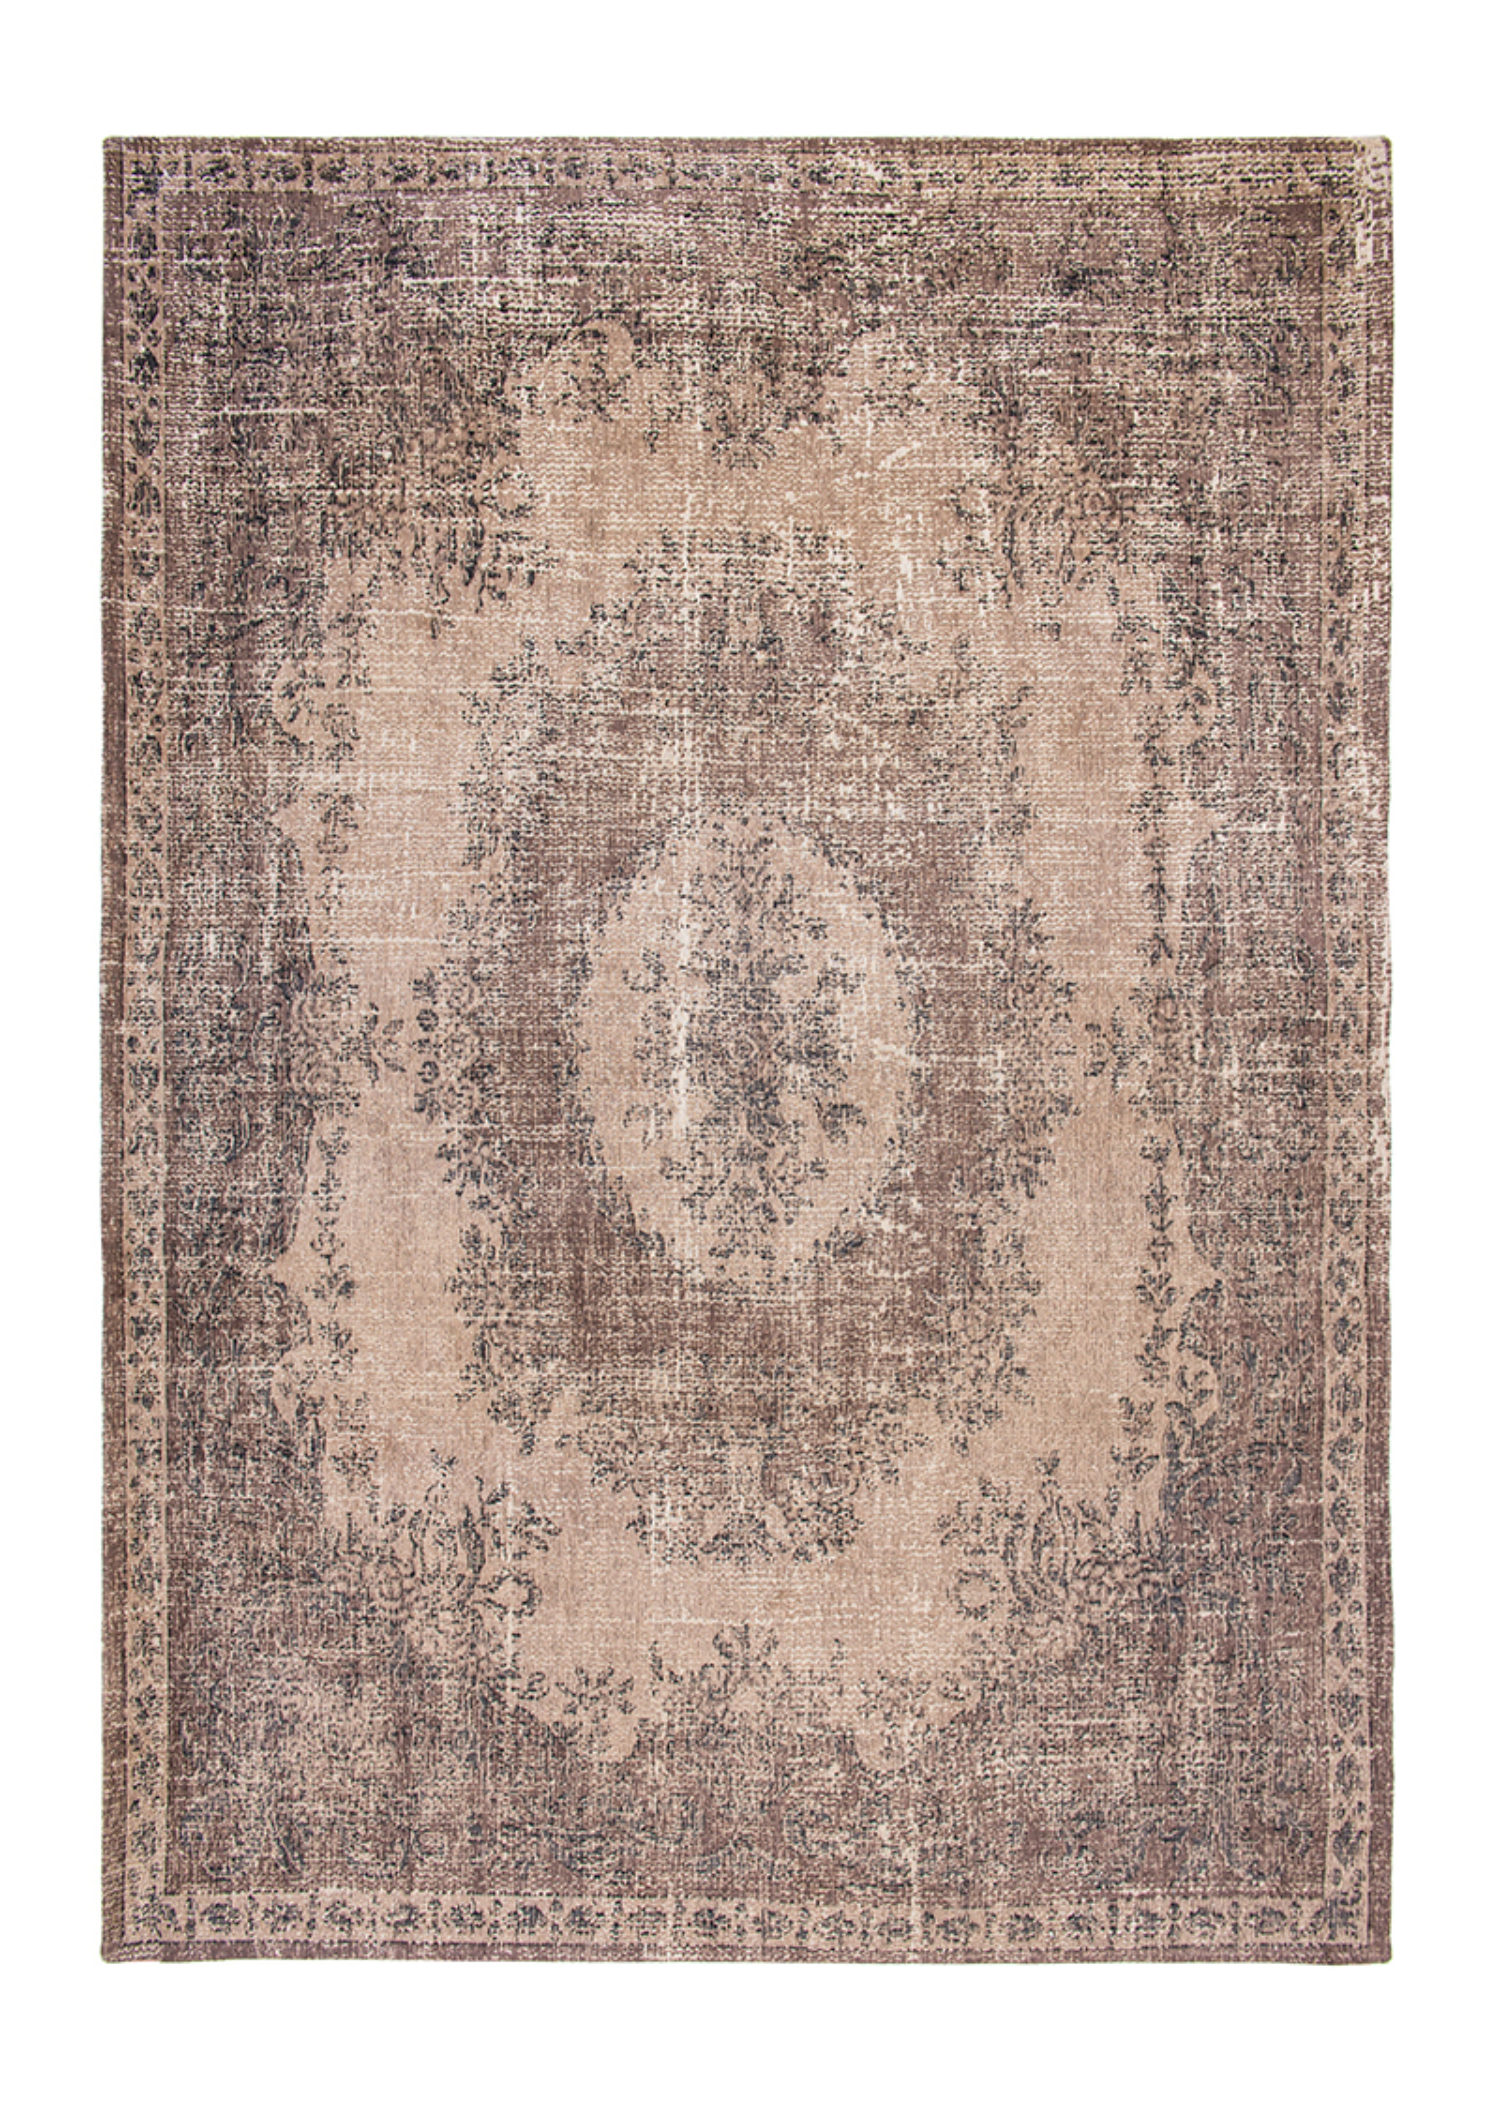 Palazzo Collection - Da Mosto Foscari Brown 9139